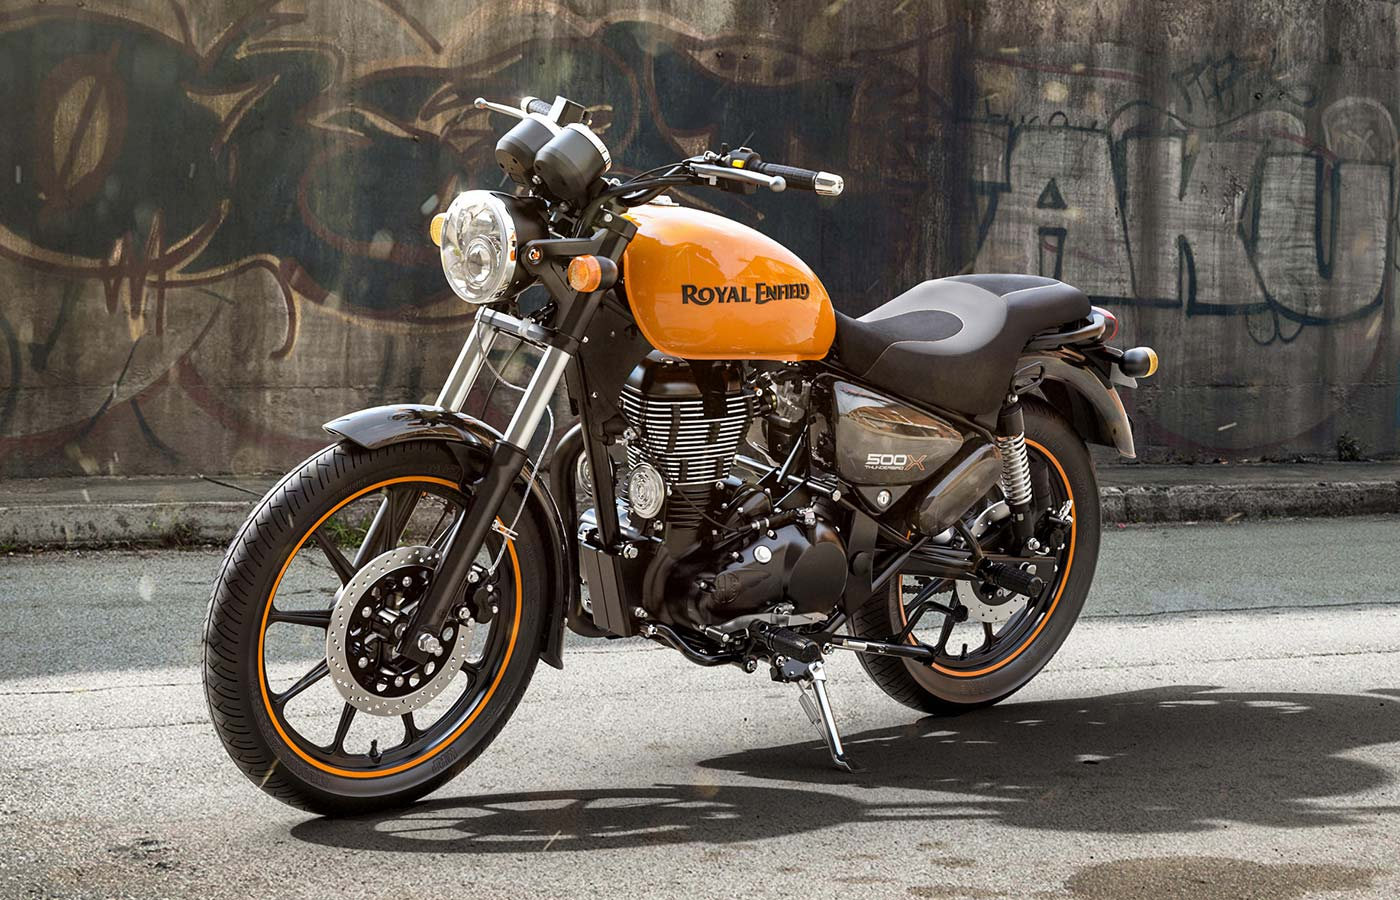 Cafe Racer Royal Enfield Price In Nepal